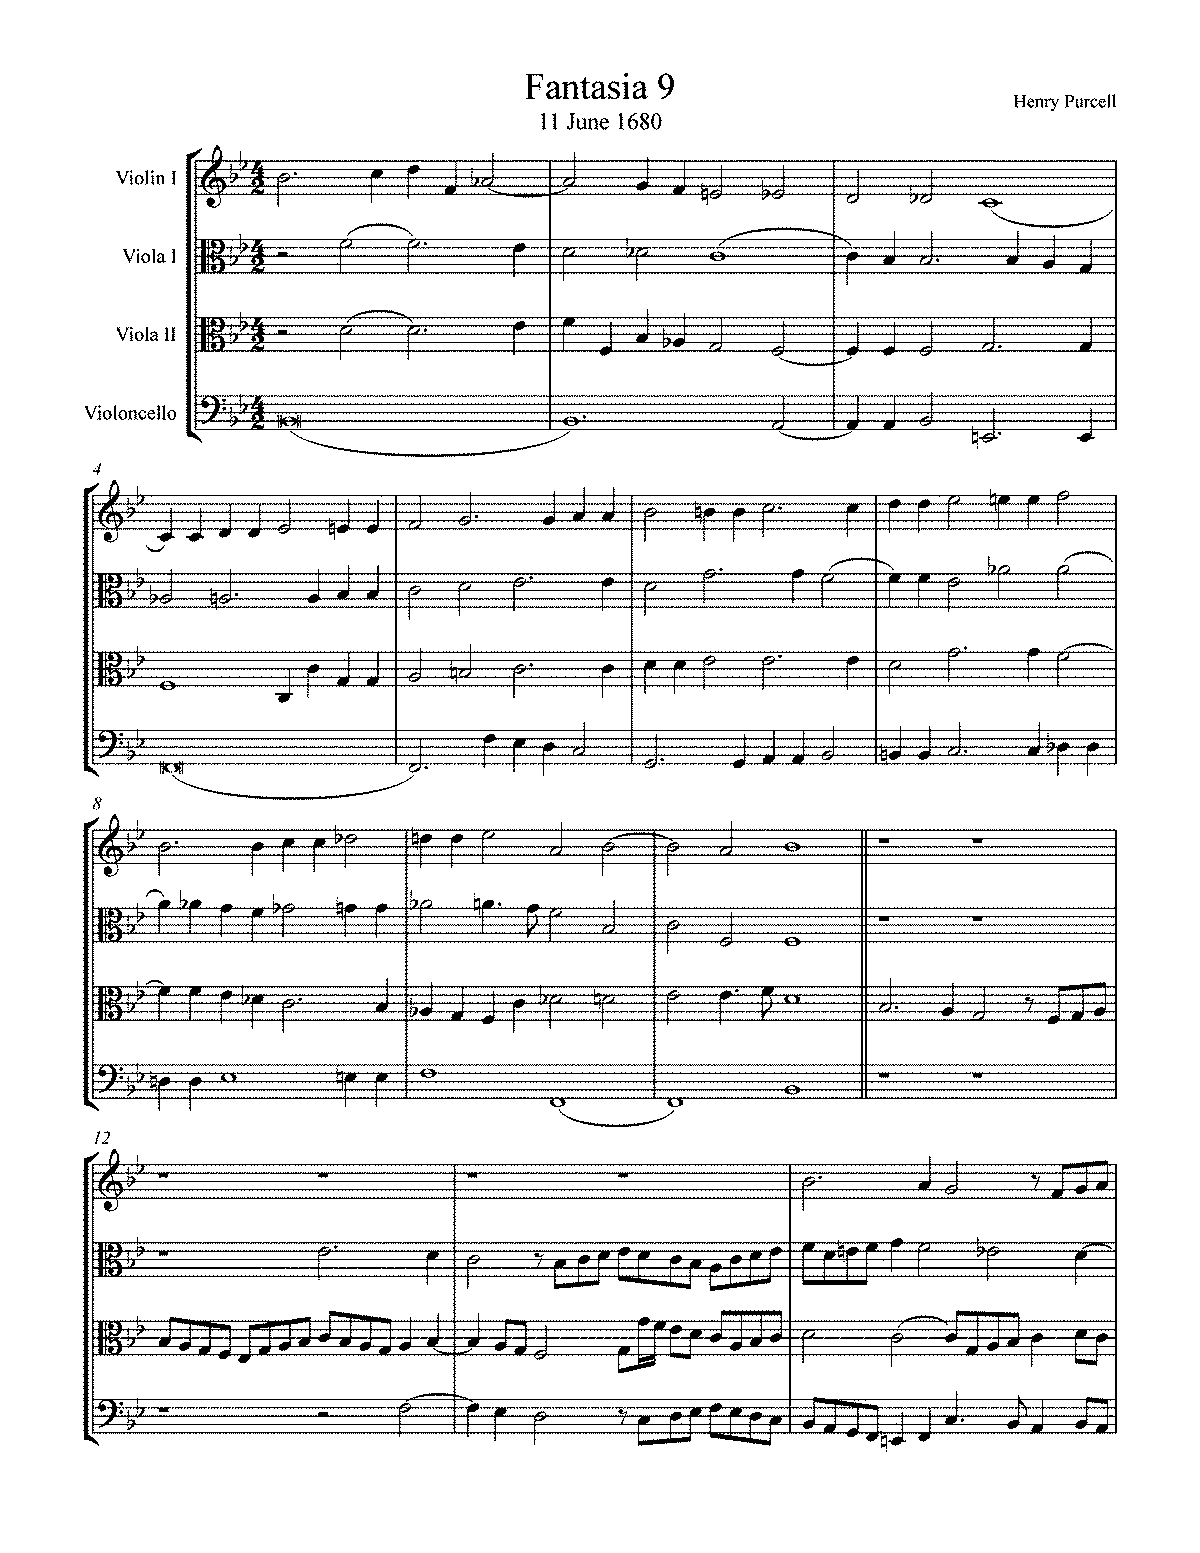 Purcell fantasia 9.pdf